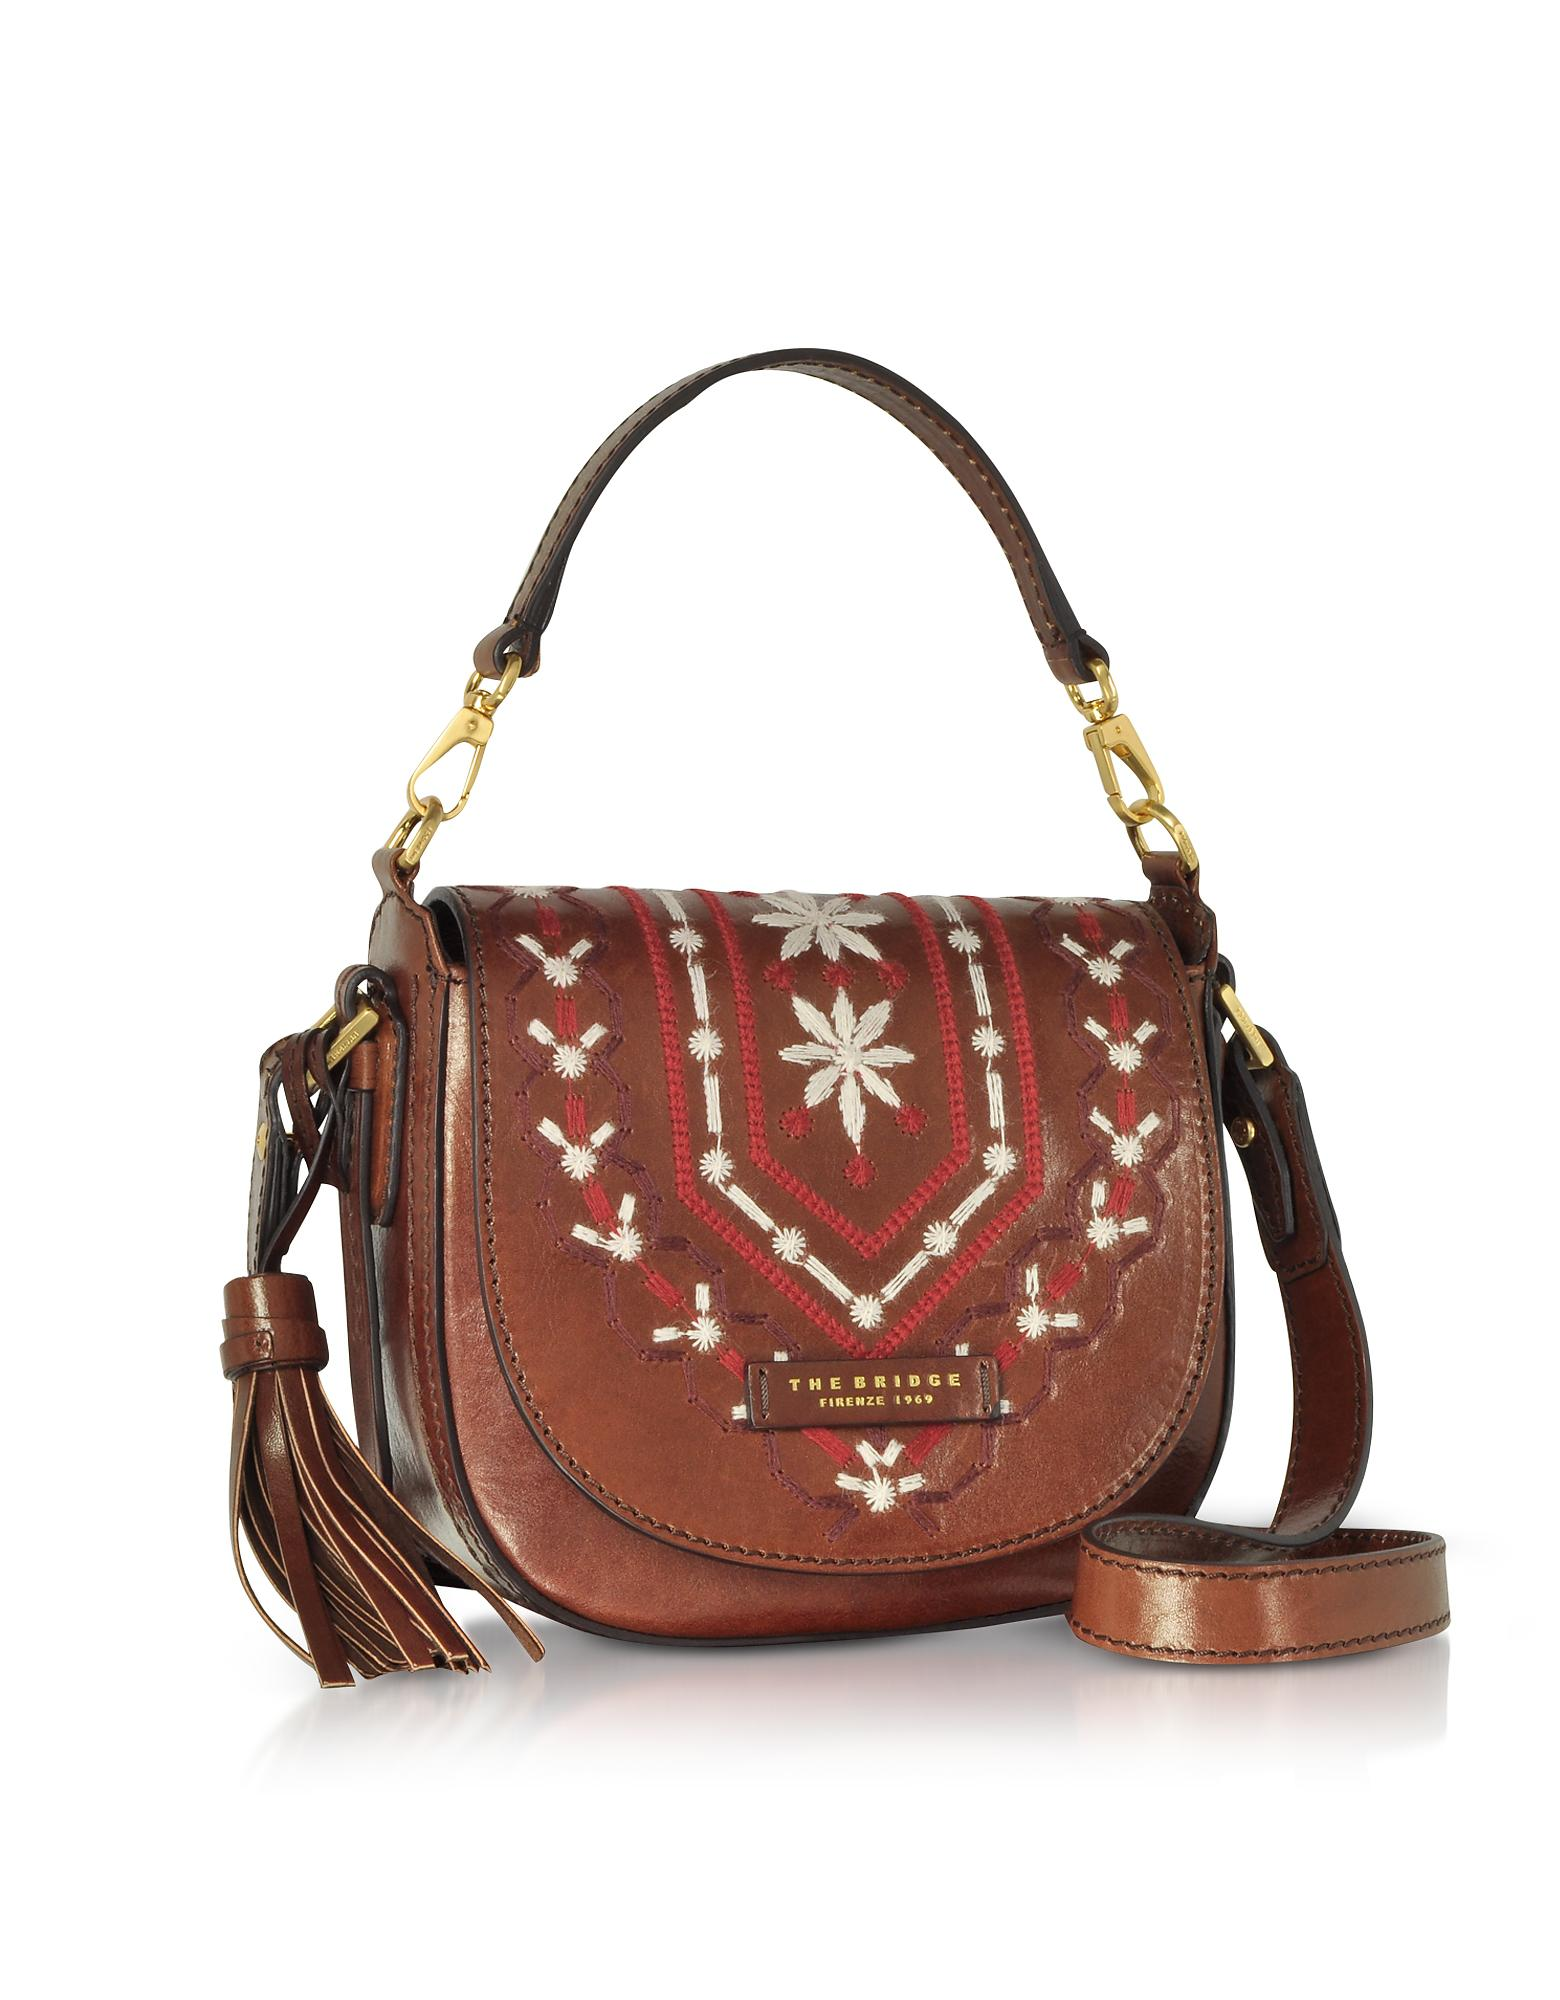 Lyst - The Bridge Fiesole Embroidered Leather Shoulder Bag in Brown e44c6c3a8f48b